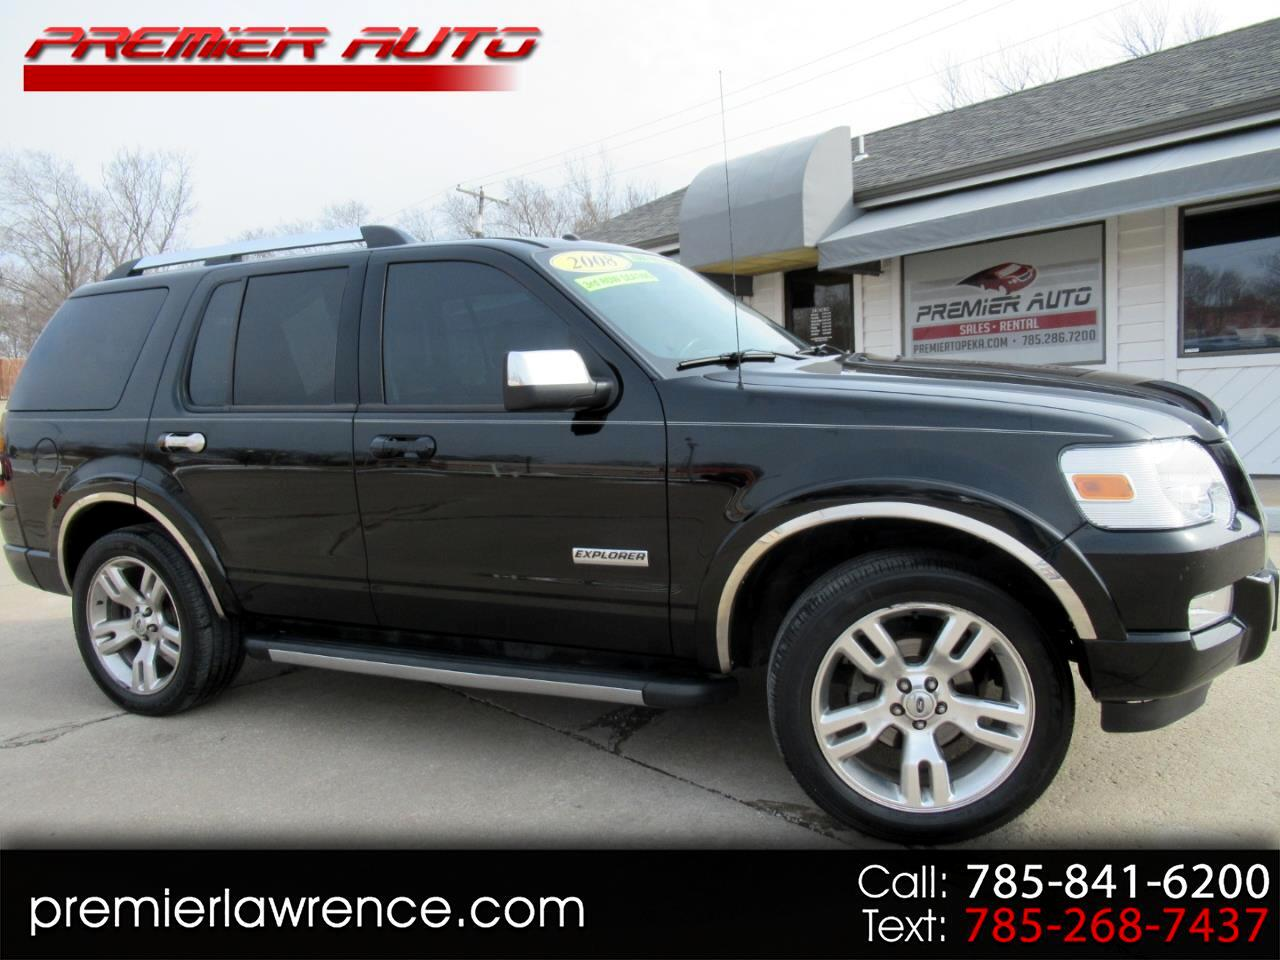 2008 Ford Explorer Limited 4.0L AWD